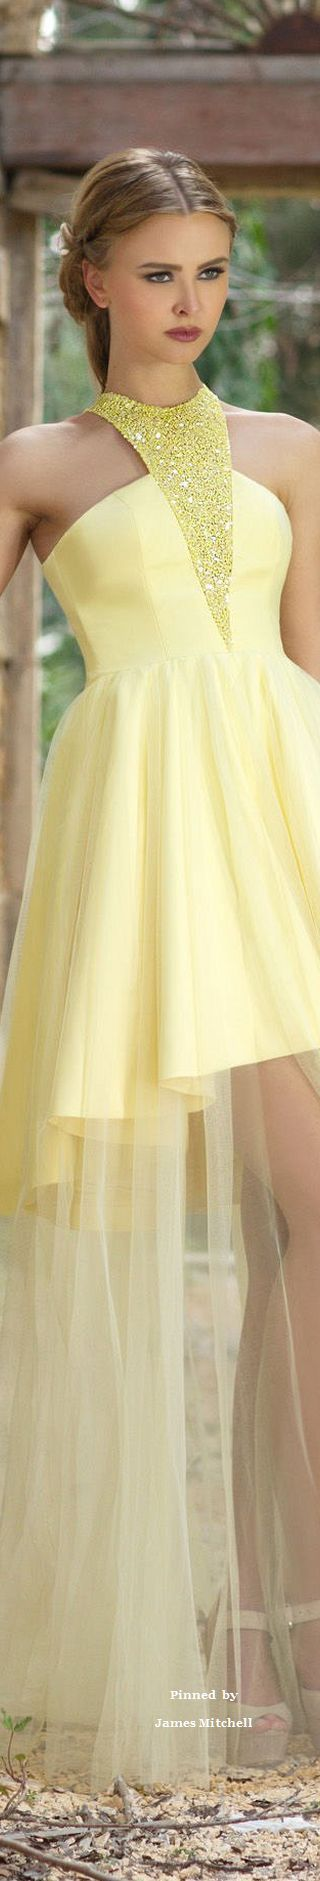 yellow little dress @roressclothes closet ideas #women fashion outfit #clothing style apparel